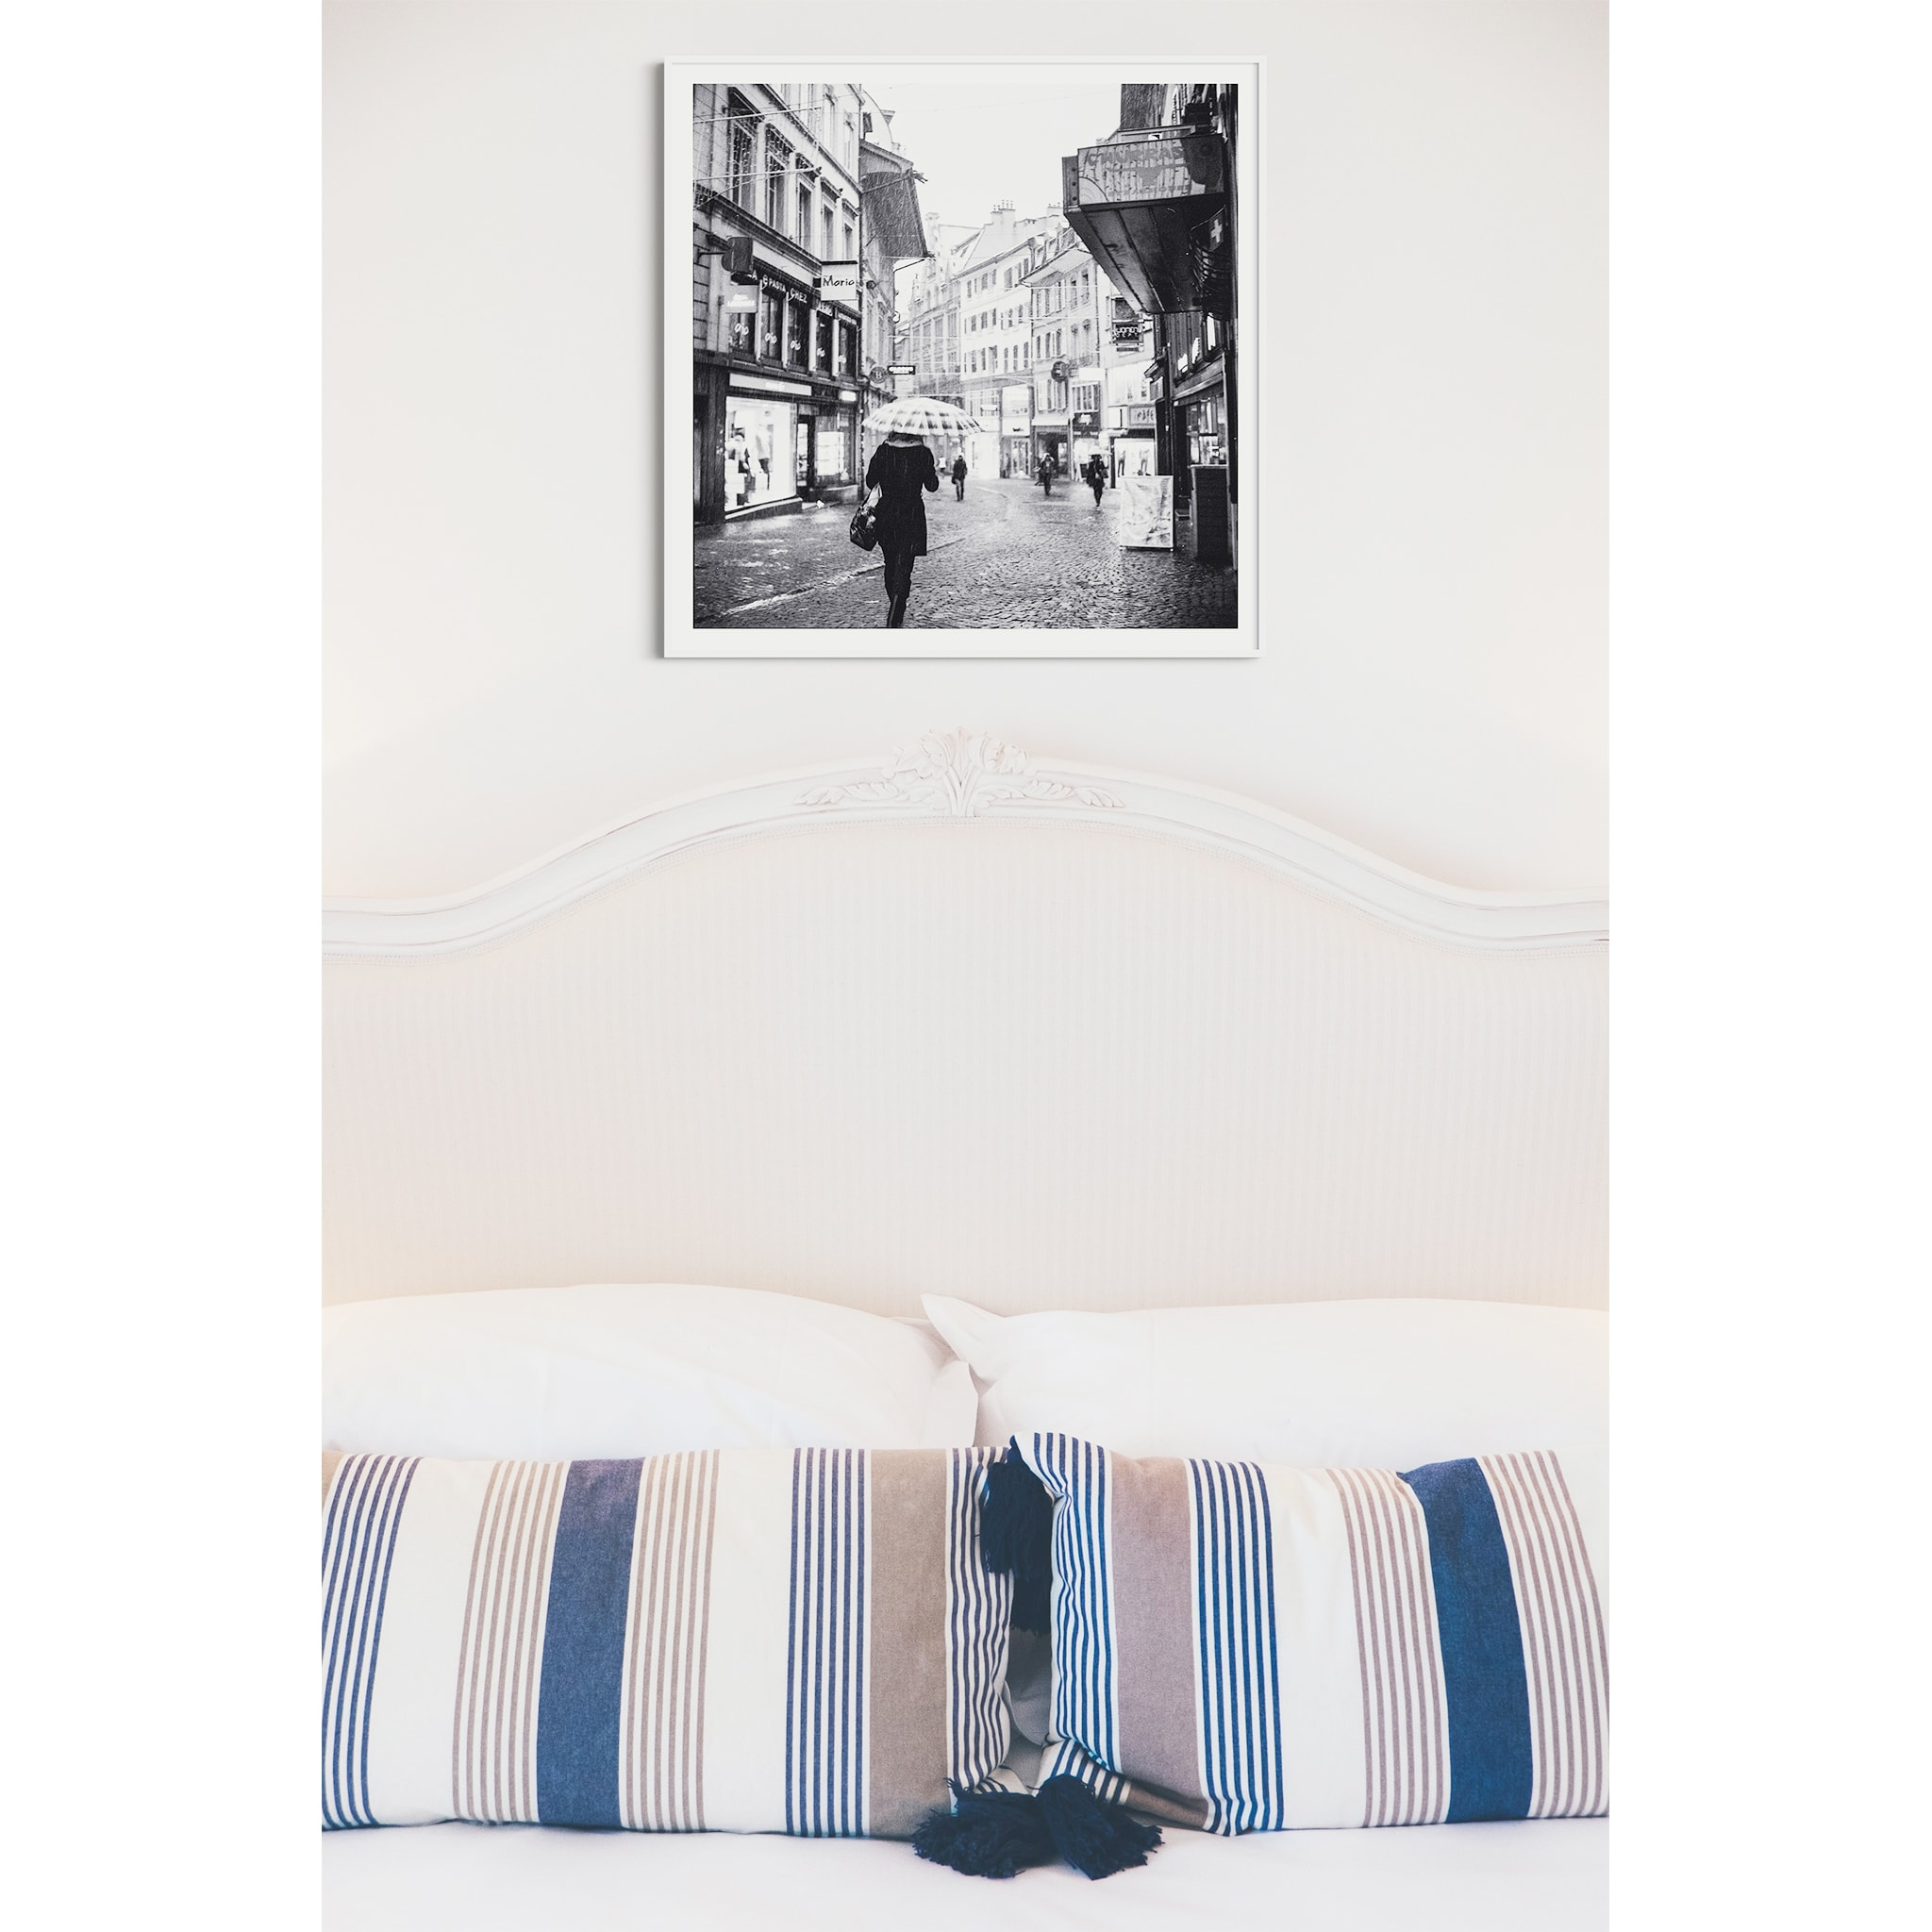 Rainy Mood In Lausanne print in white frame with border over the bed